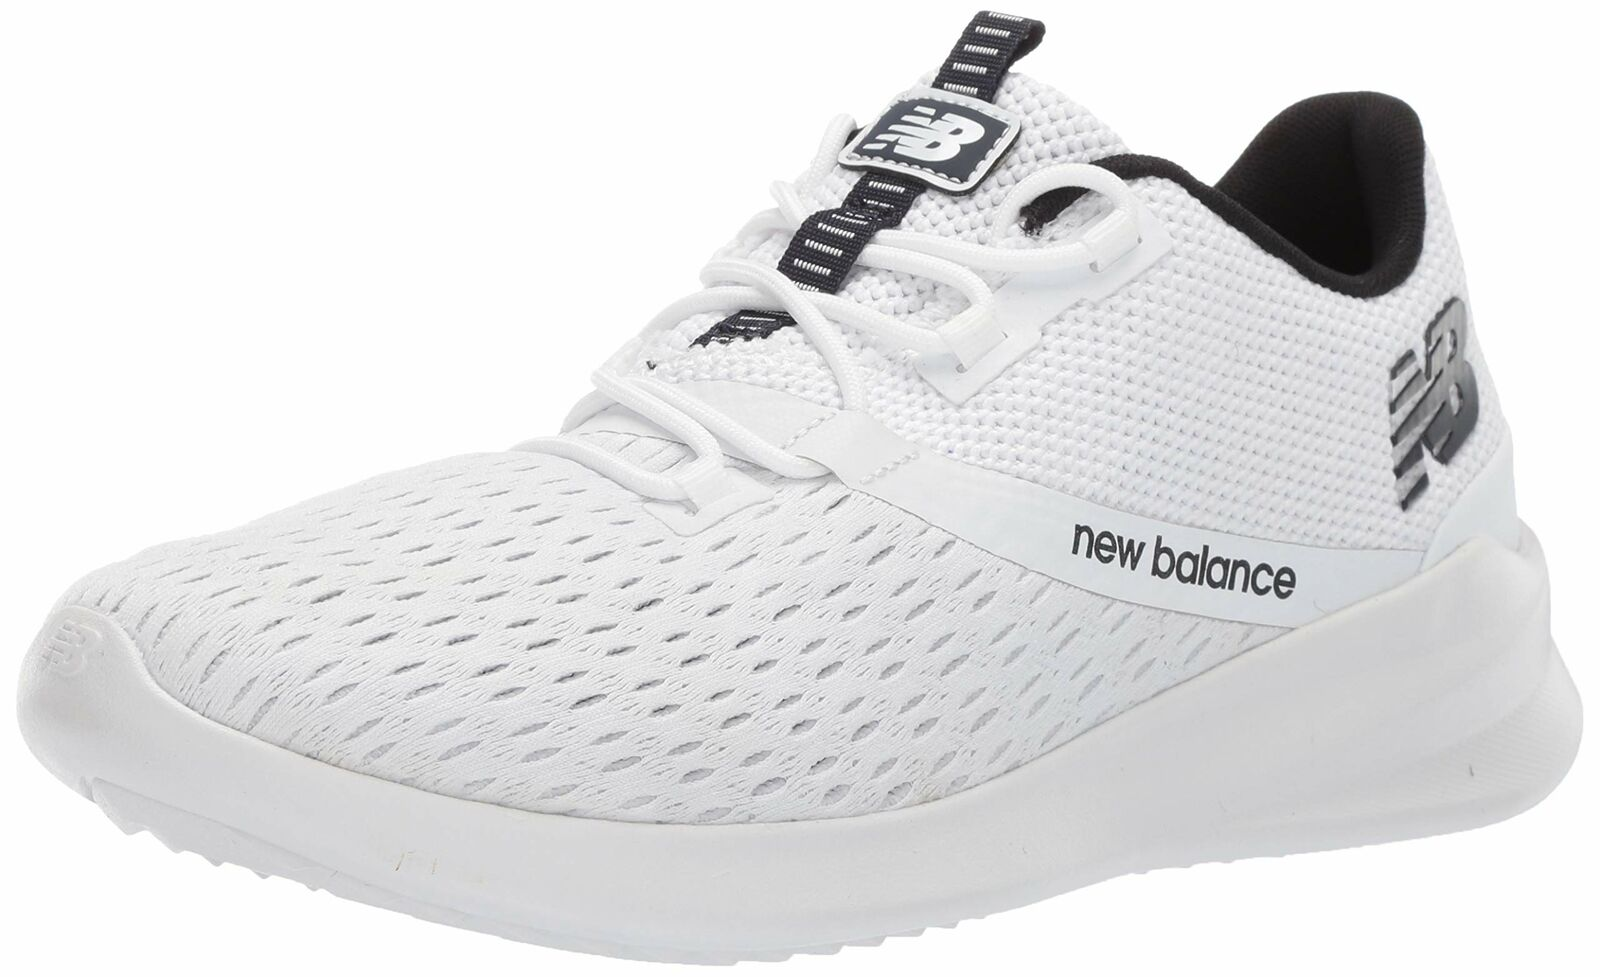 New Homme Balance District Run V1 CUSH + baskets, - Choisir Taille couleur